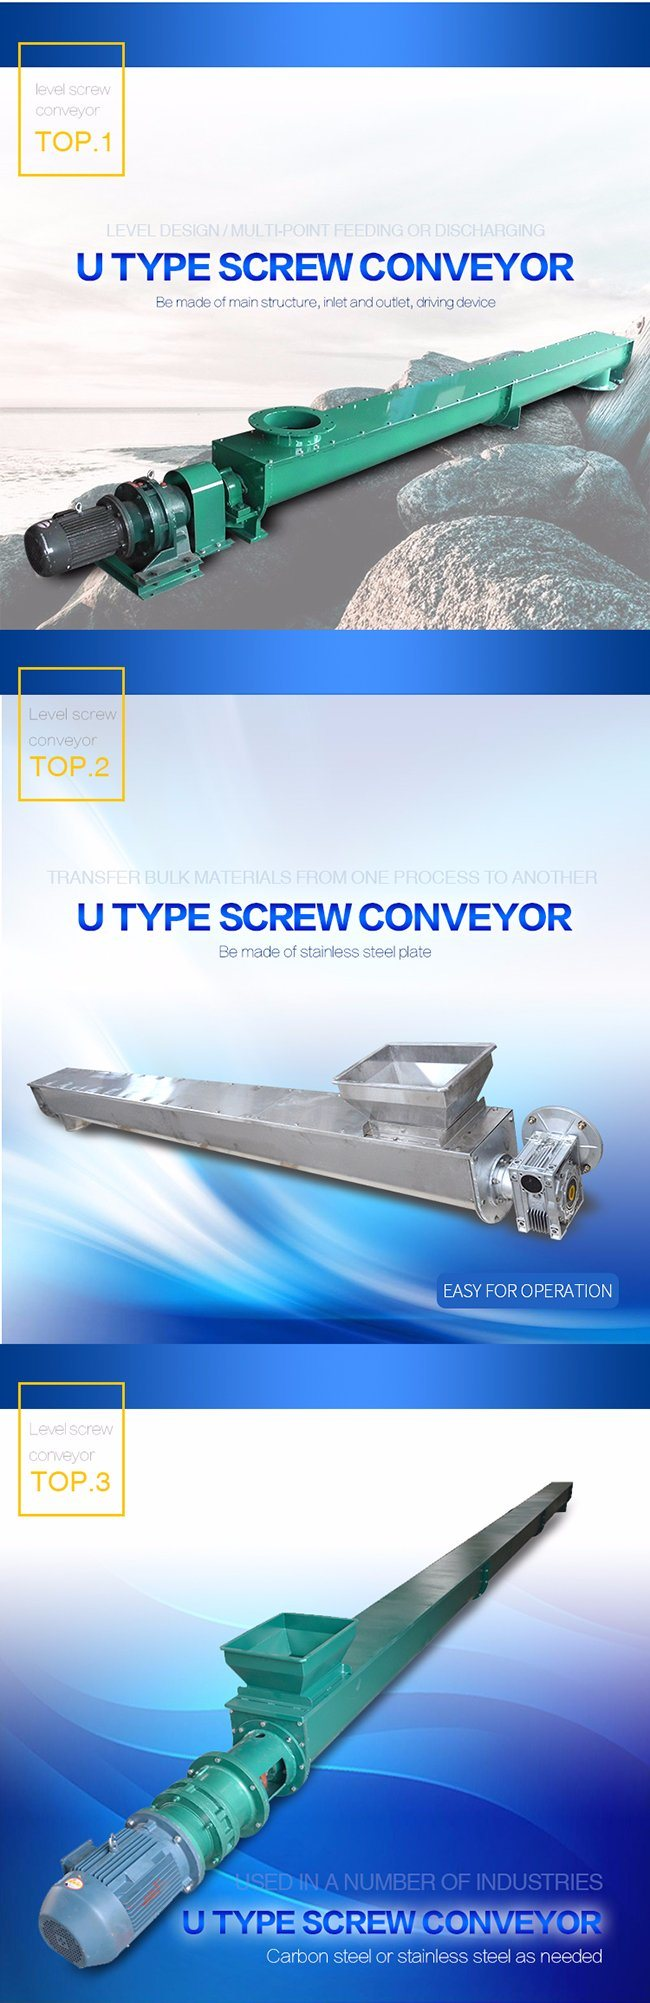 Auger Screw Conveyor for Conveying Bluck Material